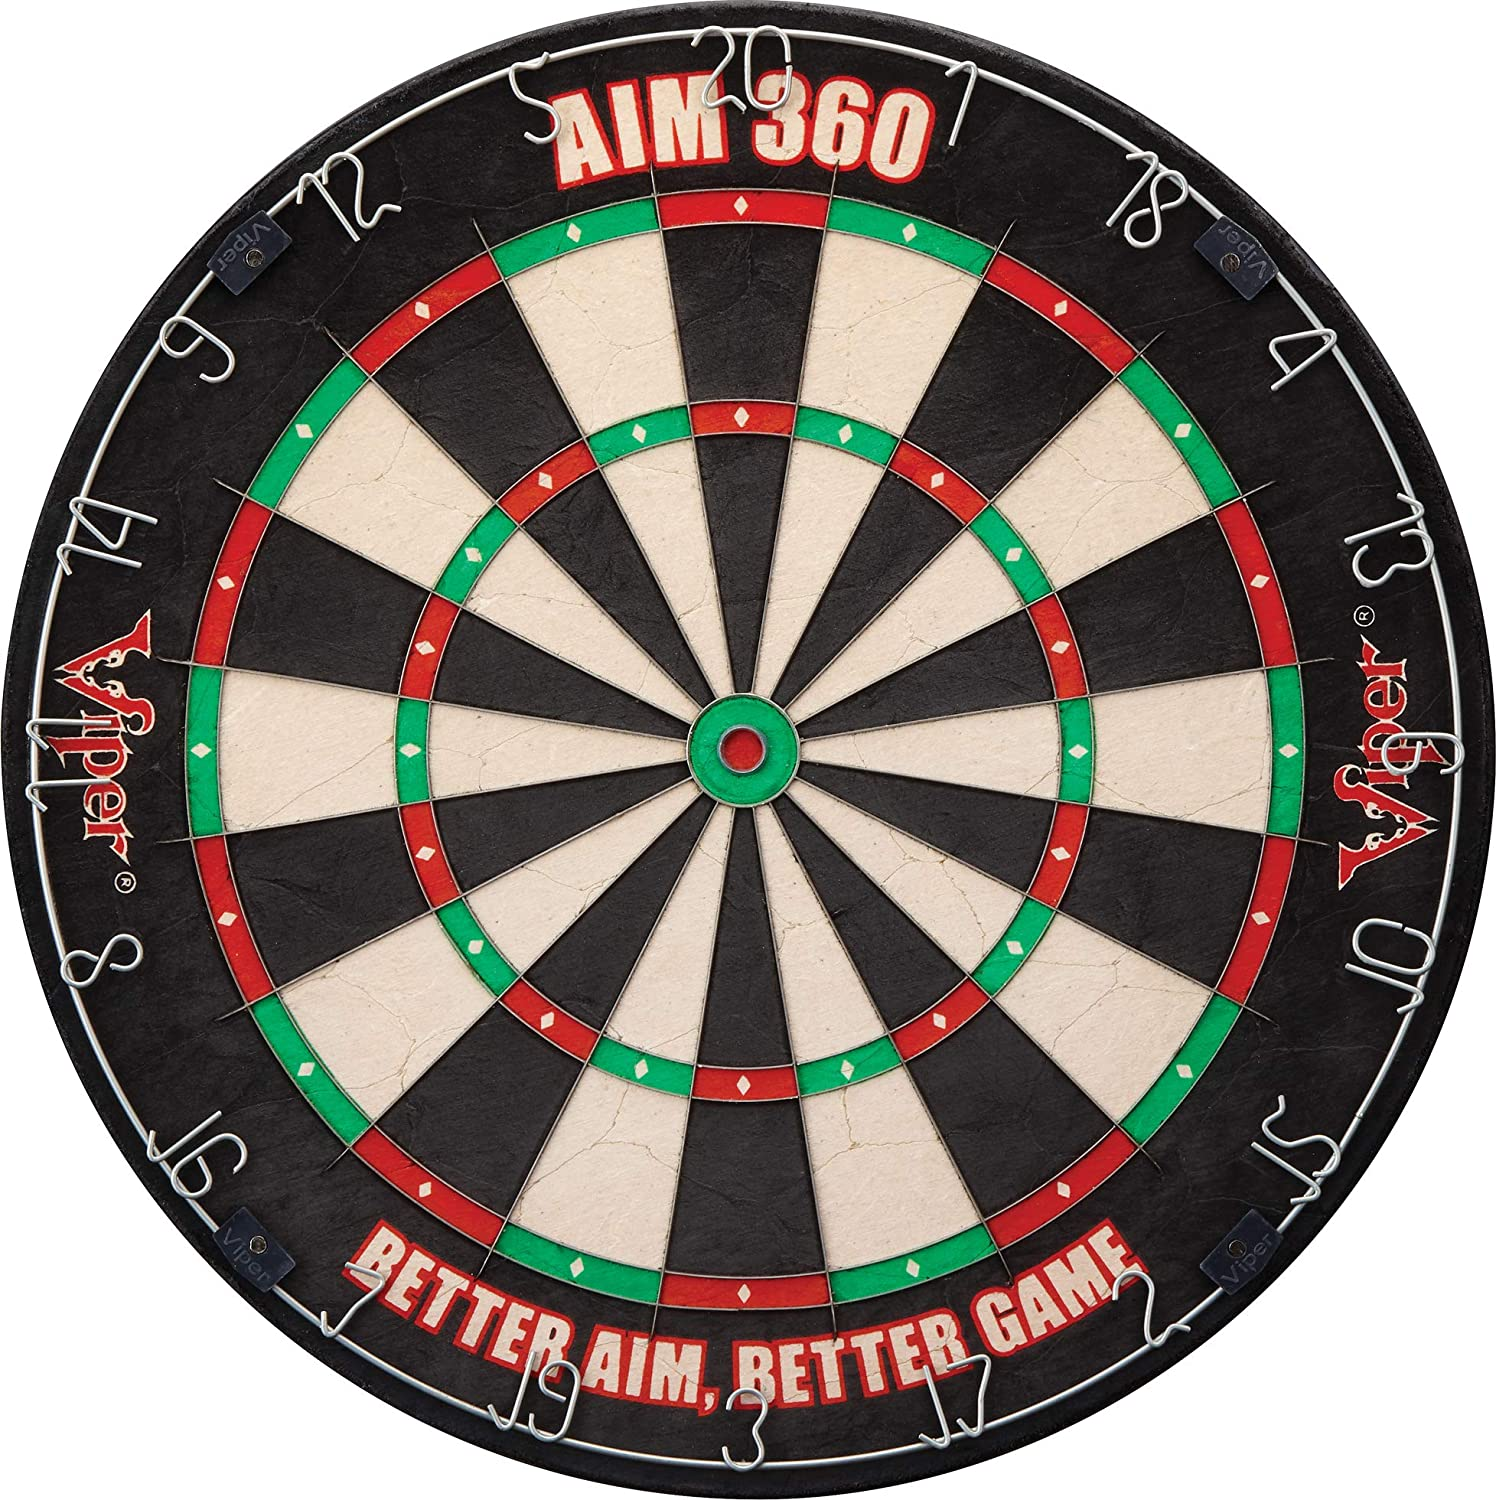 Viper AIM 360 Tournament Bristle Steel Tip Dartboard Set with StapleFree Razor Thin Metal Spider Wire for Increased Scoring, Reduced Bounce Outs; SelfHealing PremiumGrade Sisal Board, Aiming Marks, Movable Target Circles for Focused Training